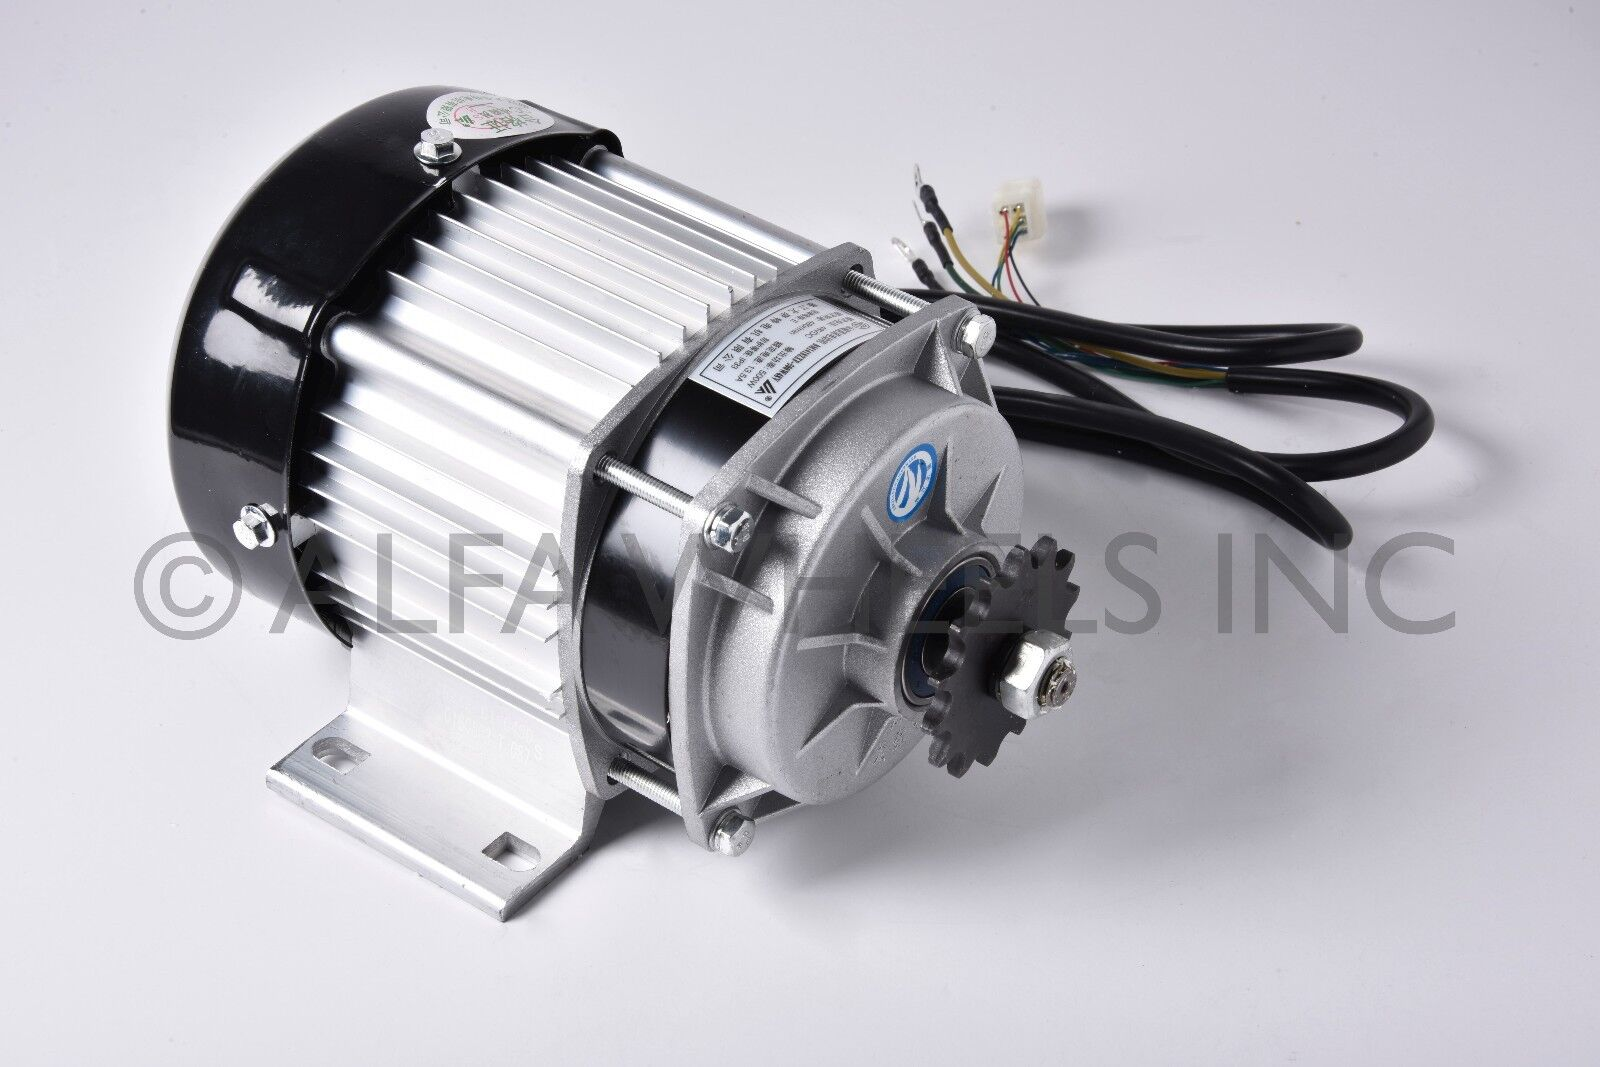 500W 48V Electric GoKart Tricycle Cart Brushless Motor DIY GEAR rossouction BLDC